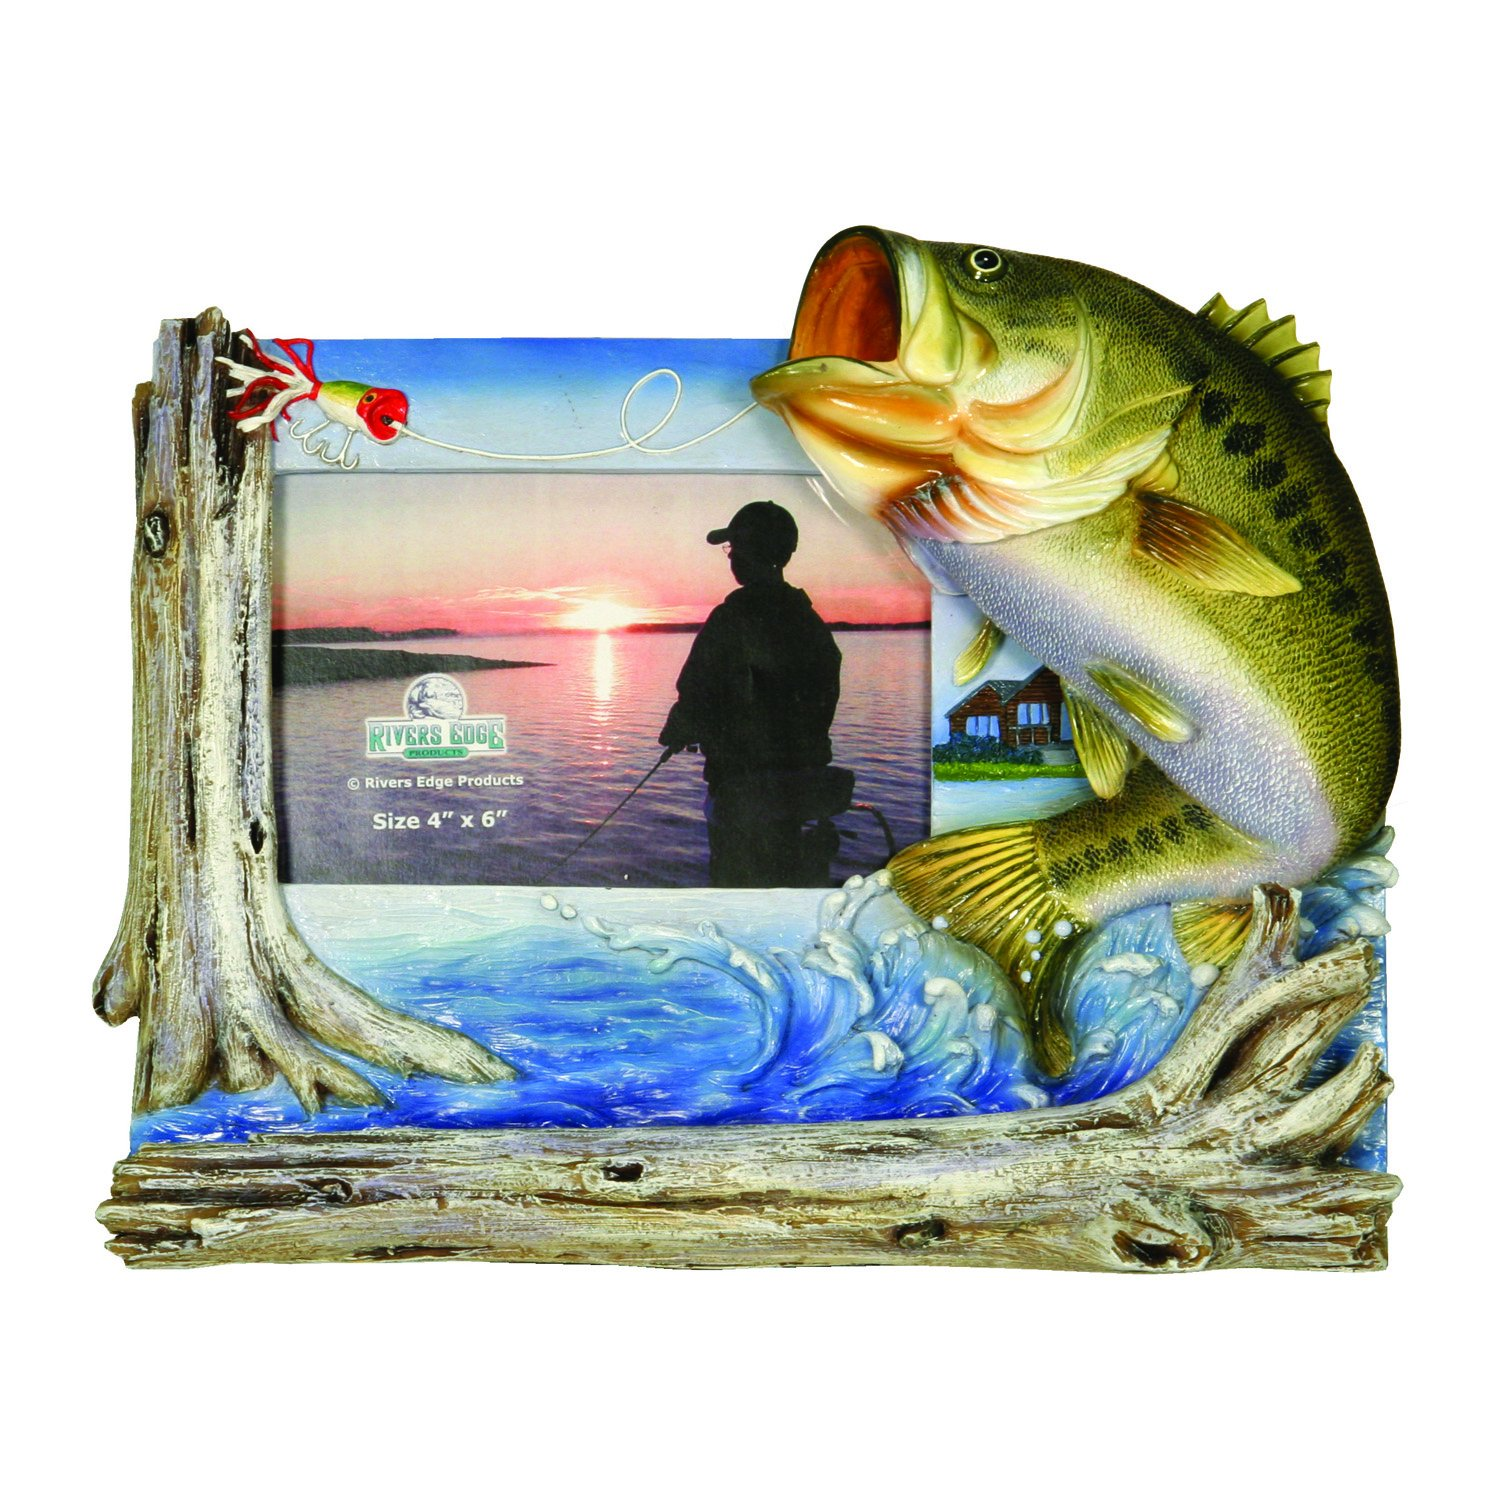 Amazon rivers edge bass fishing picture frame holds 4 x 6 amazon rivers edge bass fishing picture frame holds 4 x 6 photo sports outdoors jeuxipadfo Choice Image